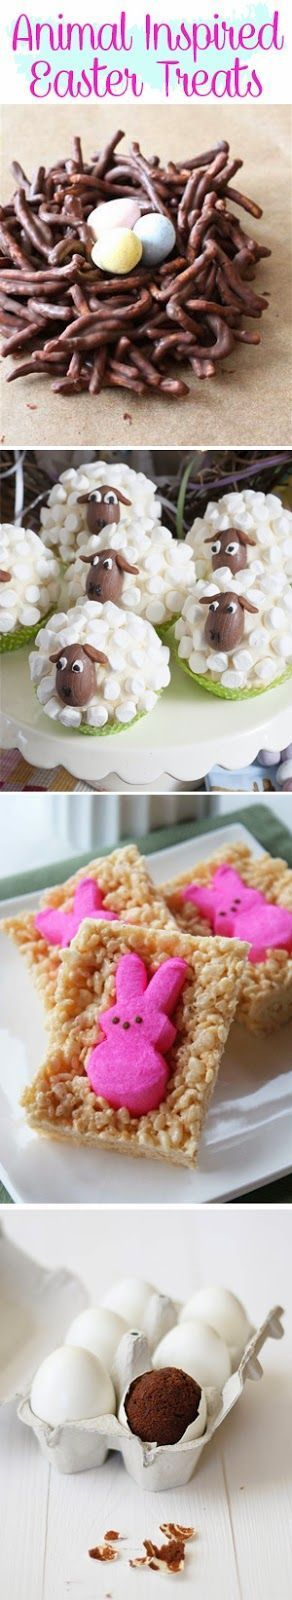 Easter Treats for kids and adults